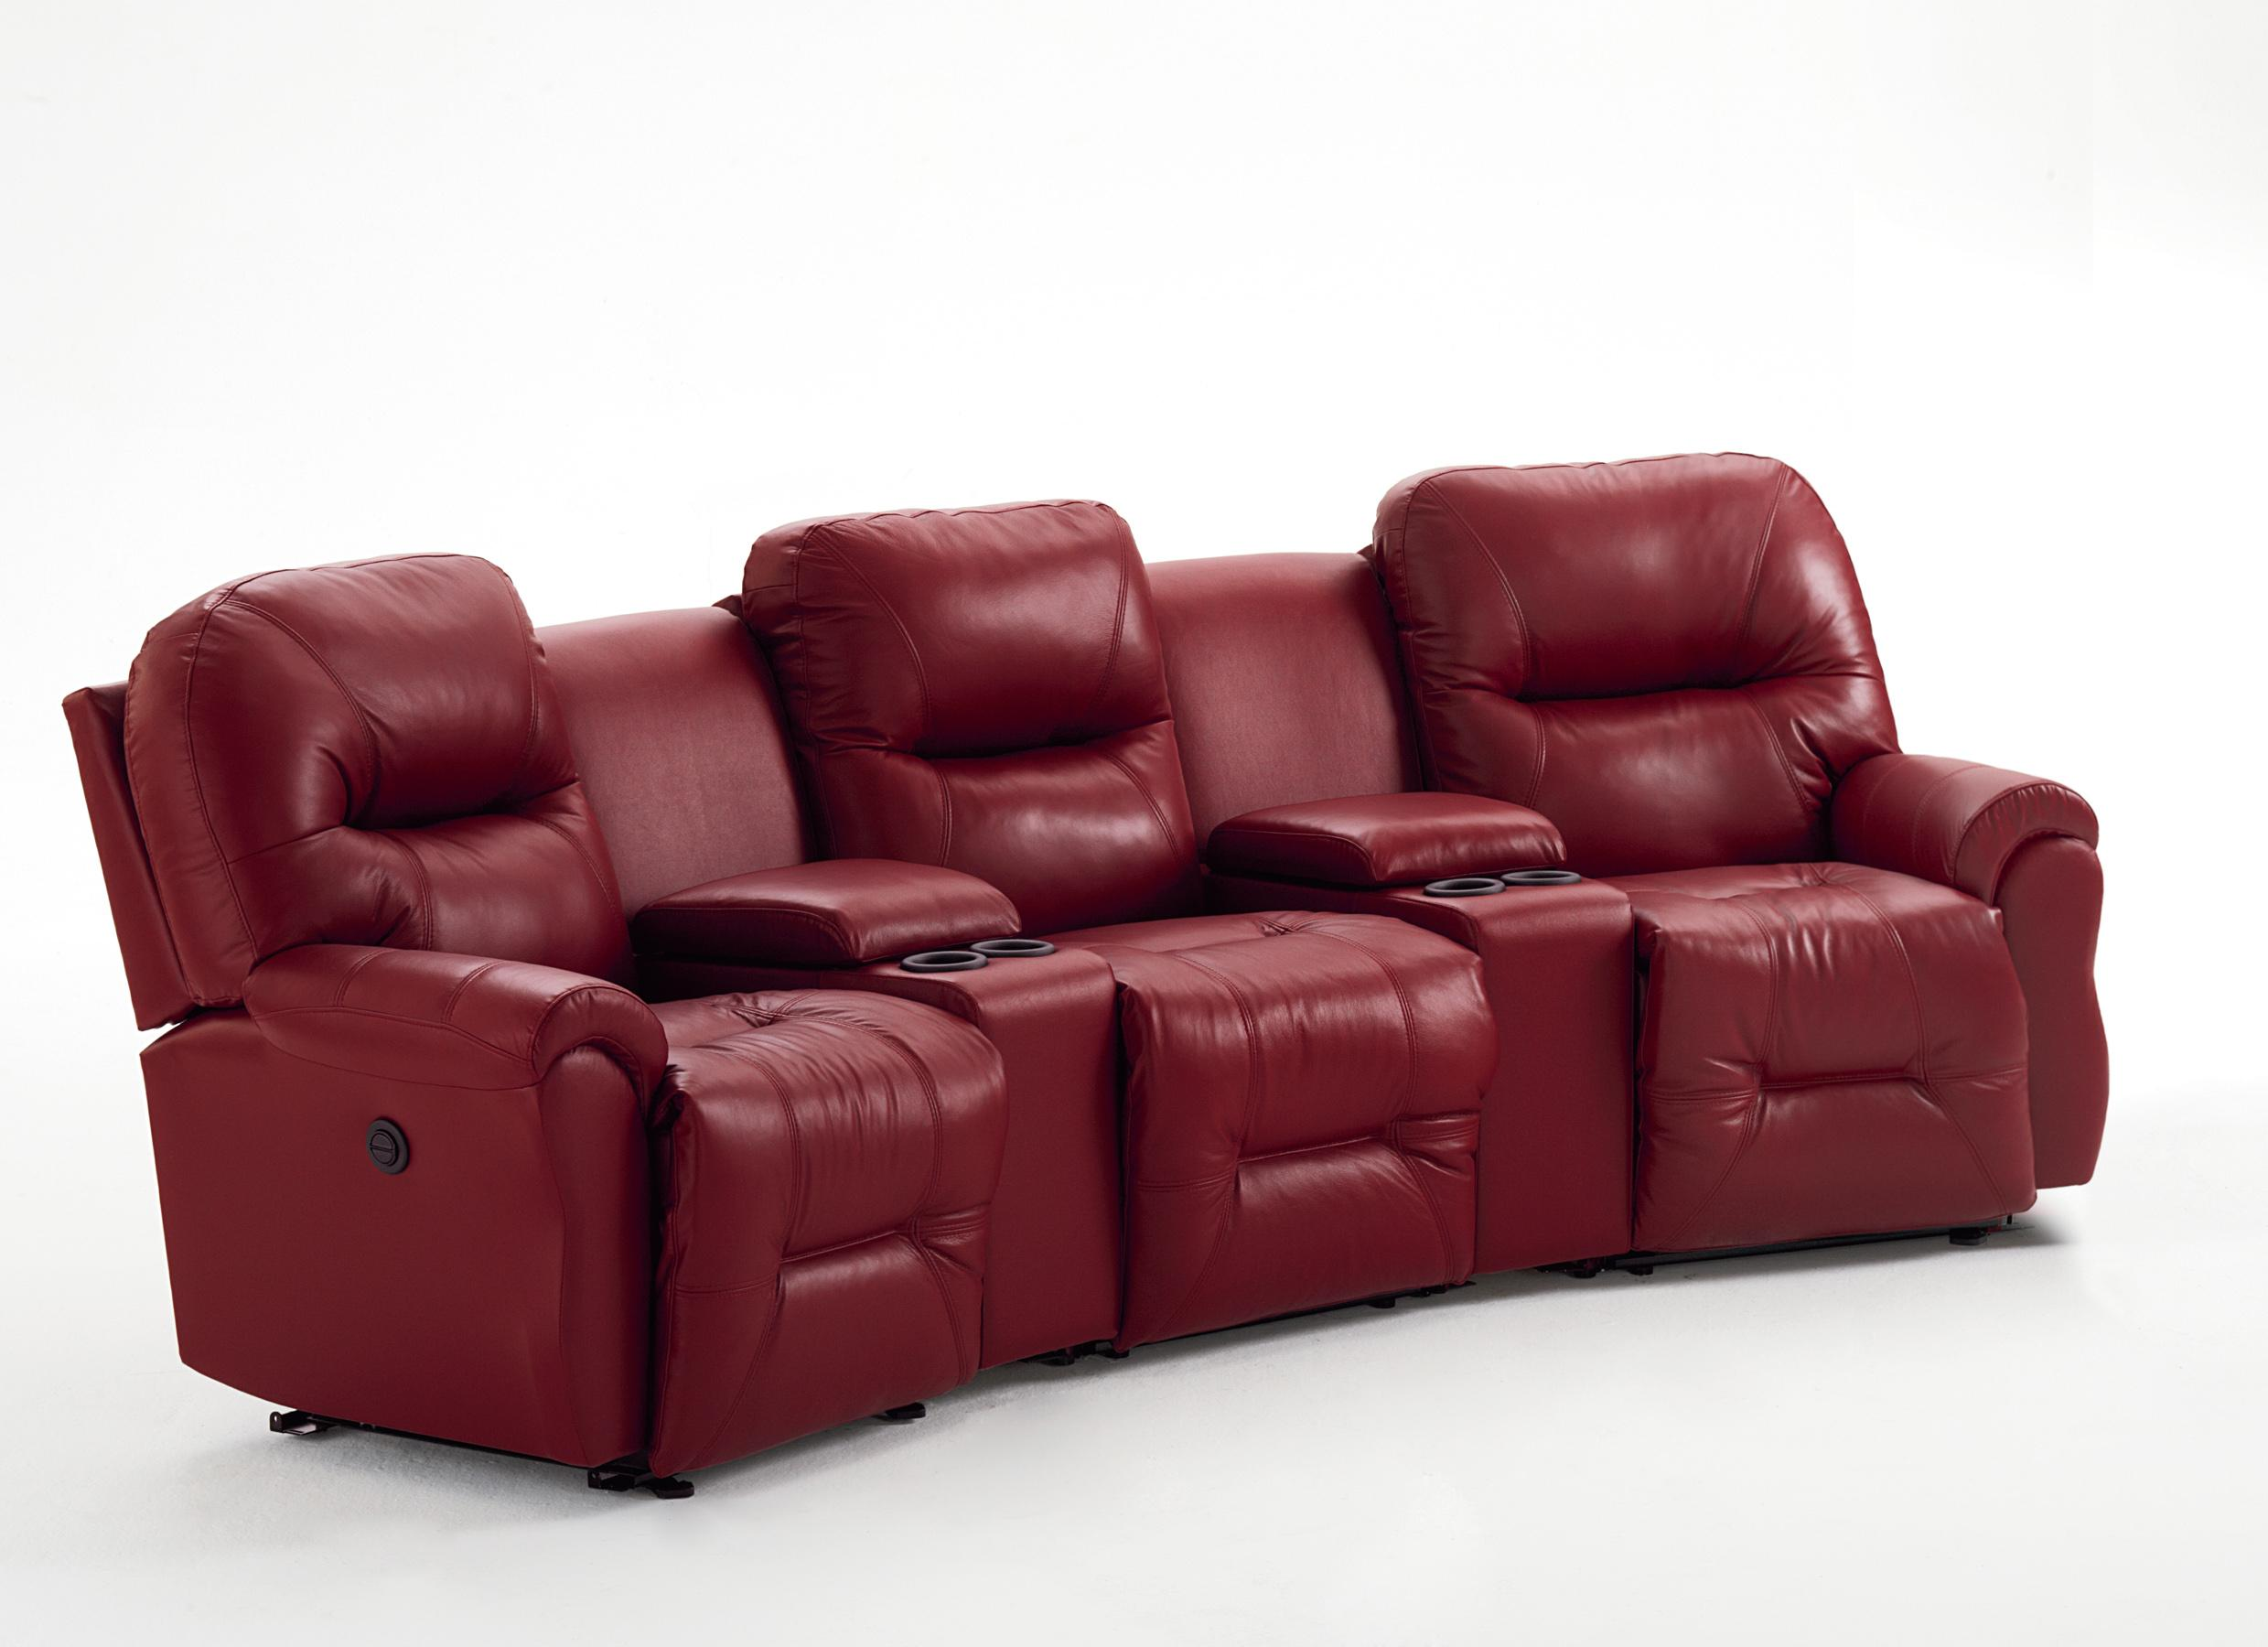 Bodie 3-Seater Power Reclining Home Theater Group by Best Home Furnishings at Best Home Furnishings